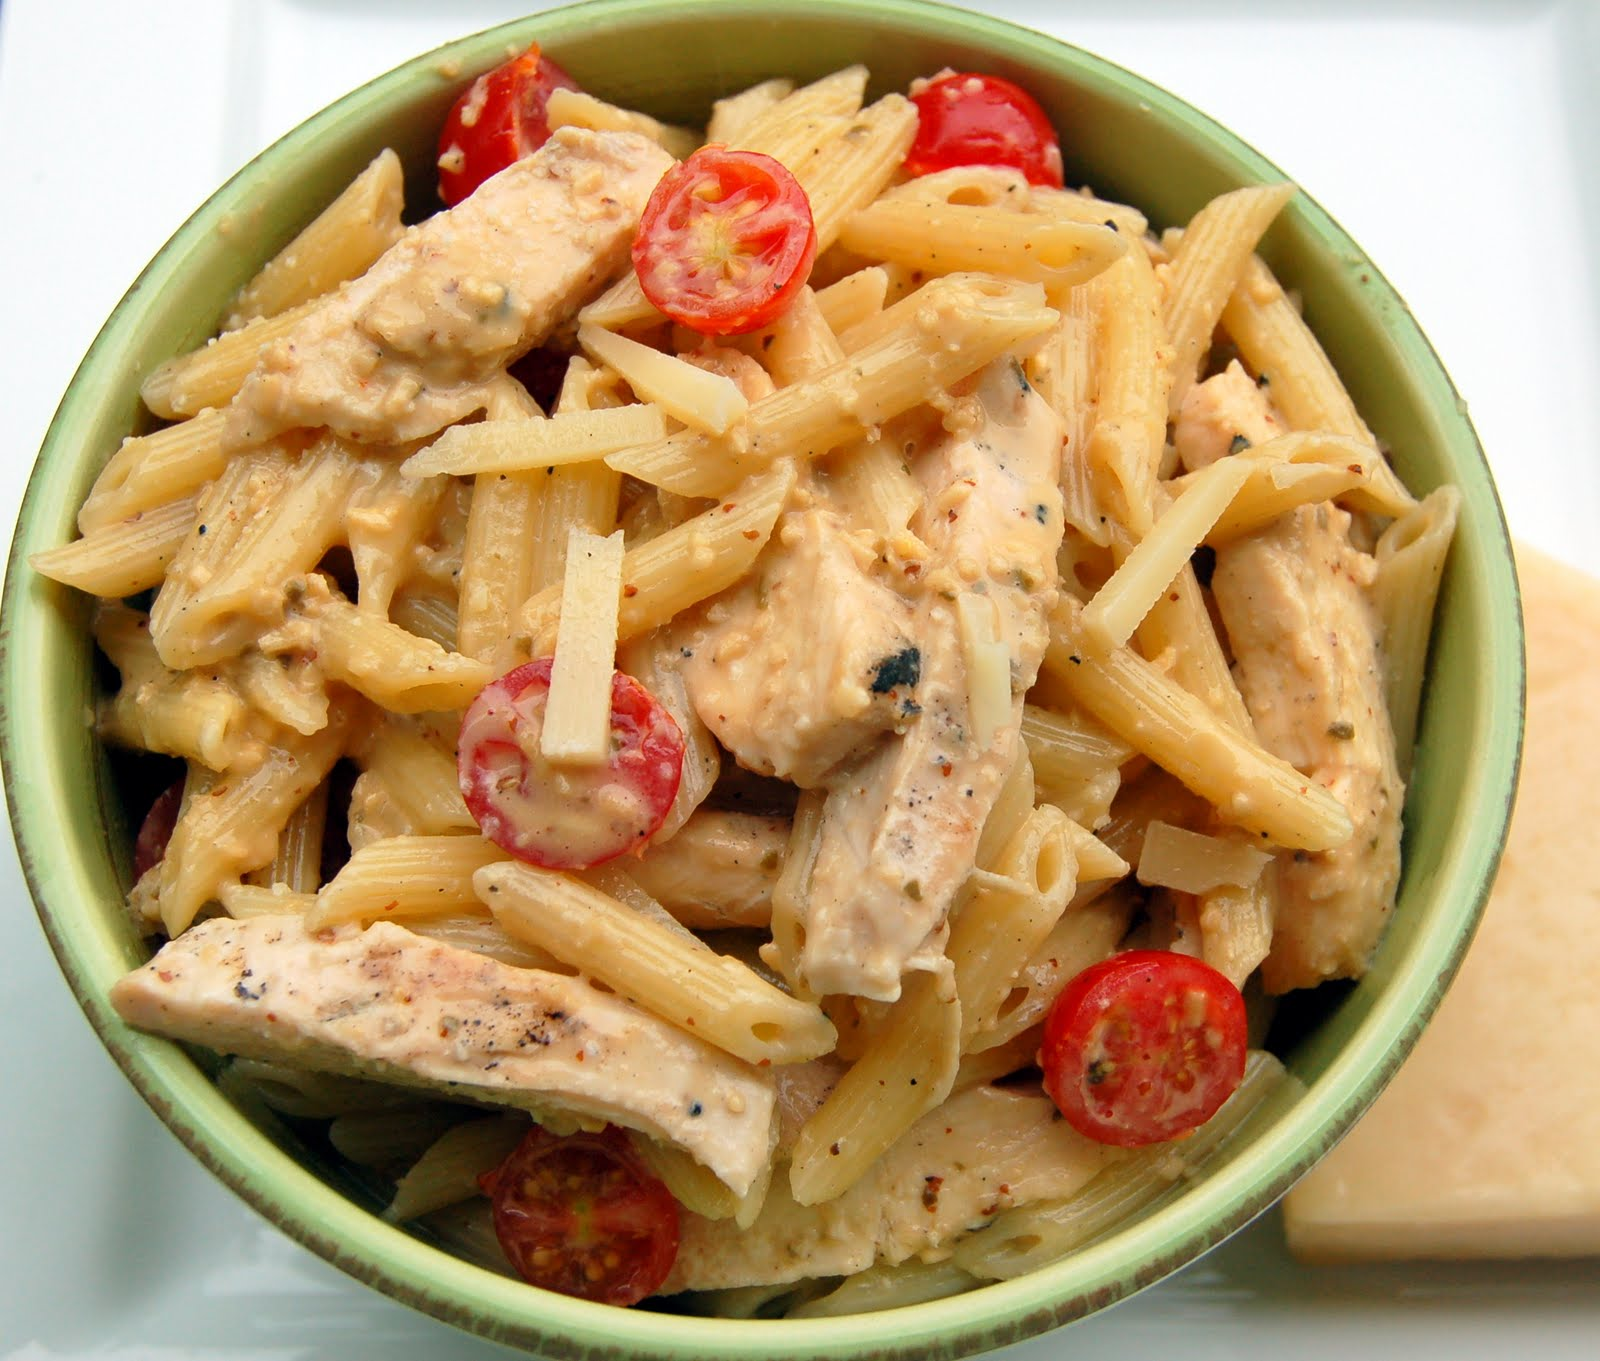 Pasta recipes in urdu for kids easy by chef zakir indian style in healthy chicken pasta recipes in urdu for kids easy by chef zakir indian stylei n hindi with pictues alfredo indian with shrimp forumfinder Image collections